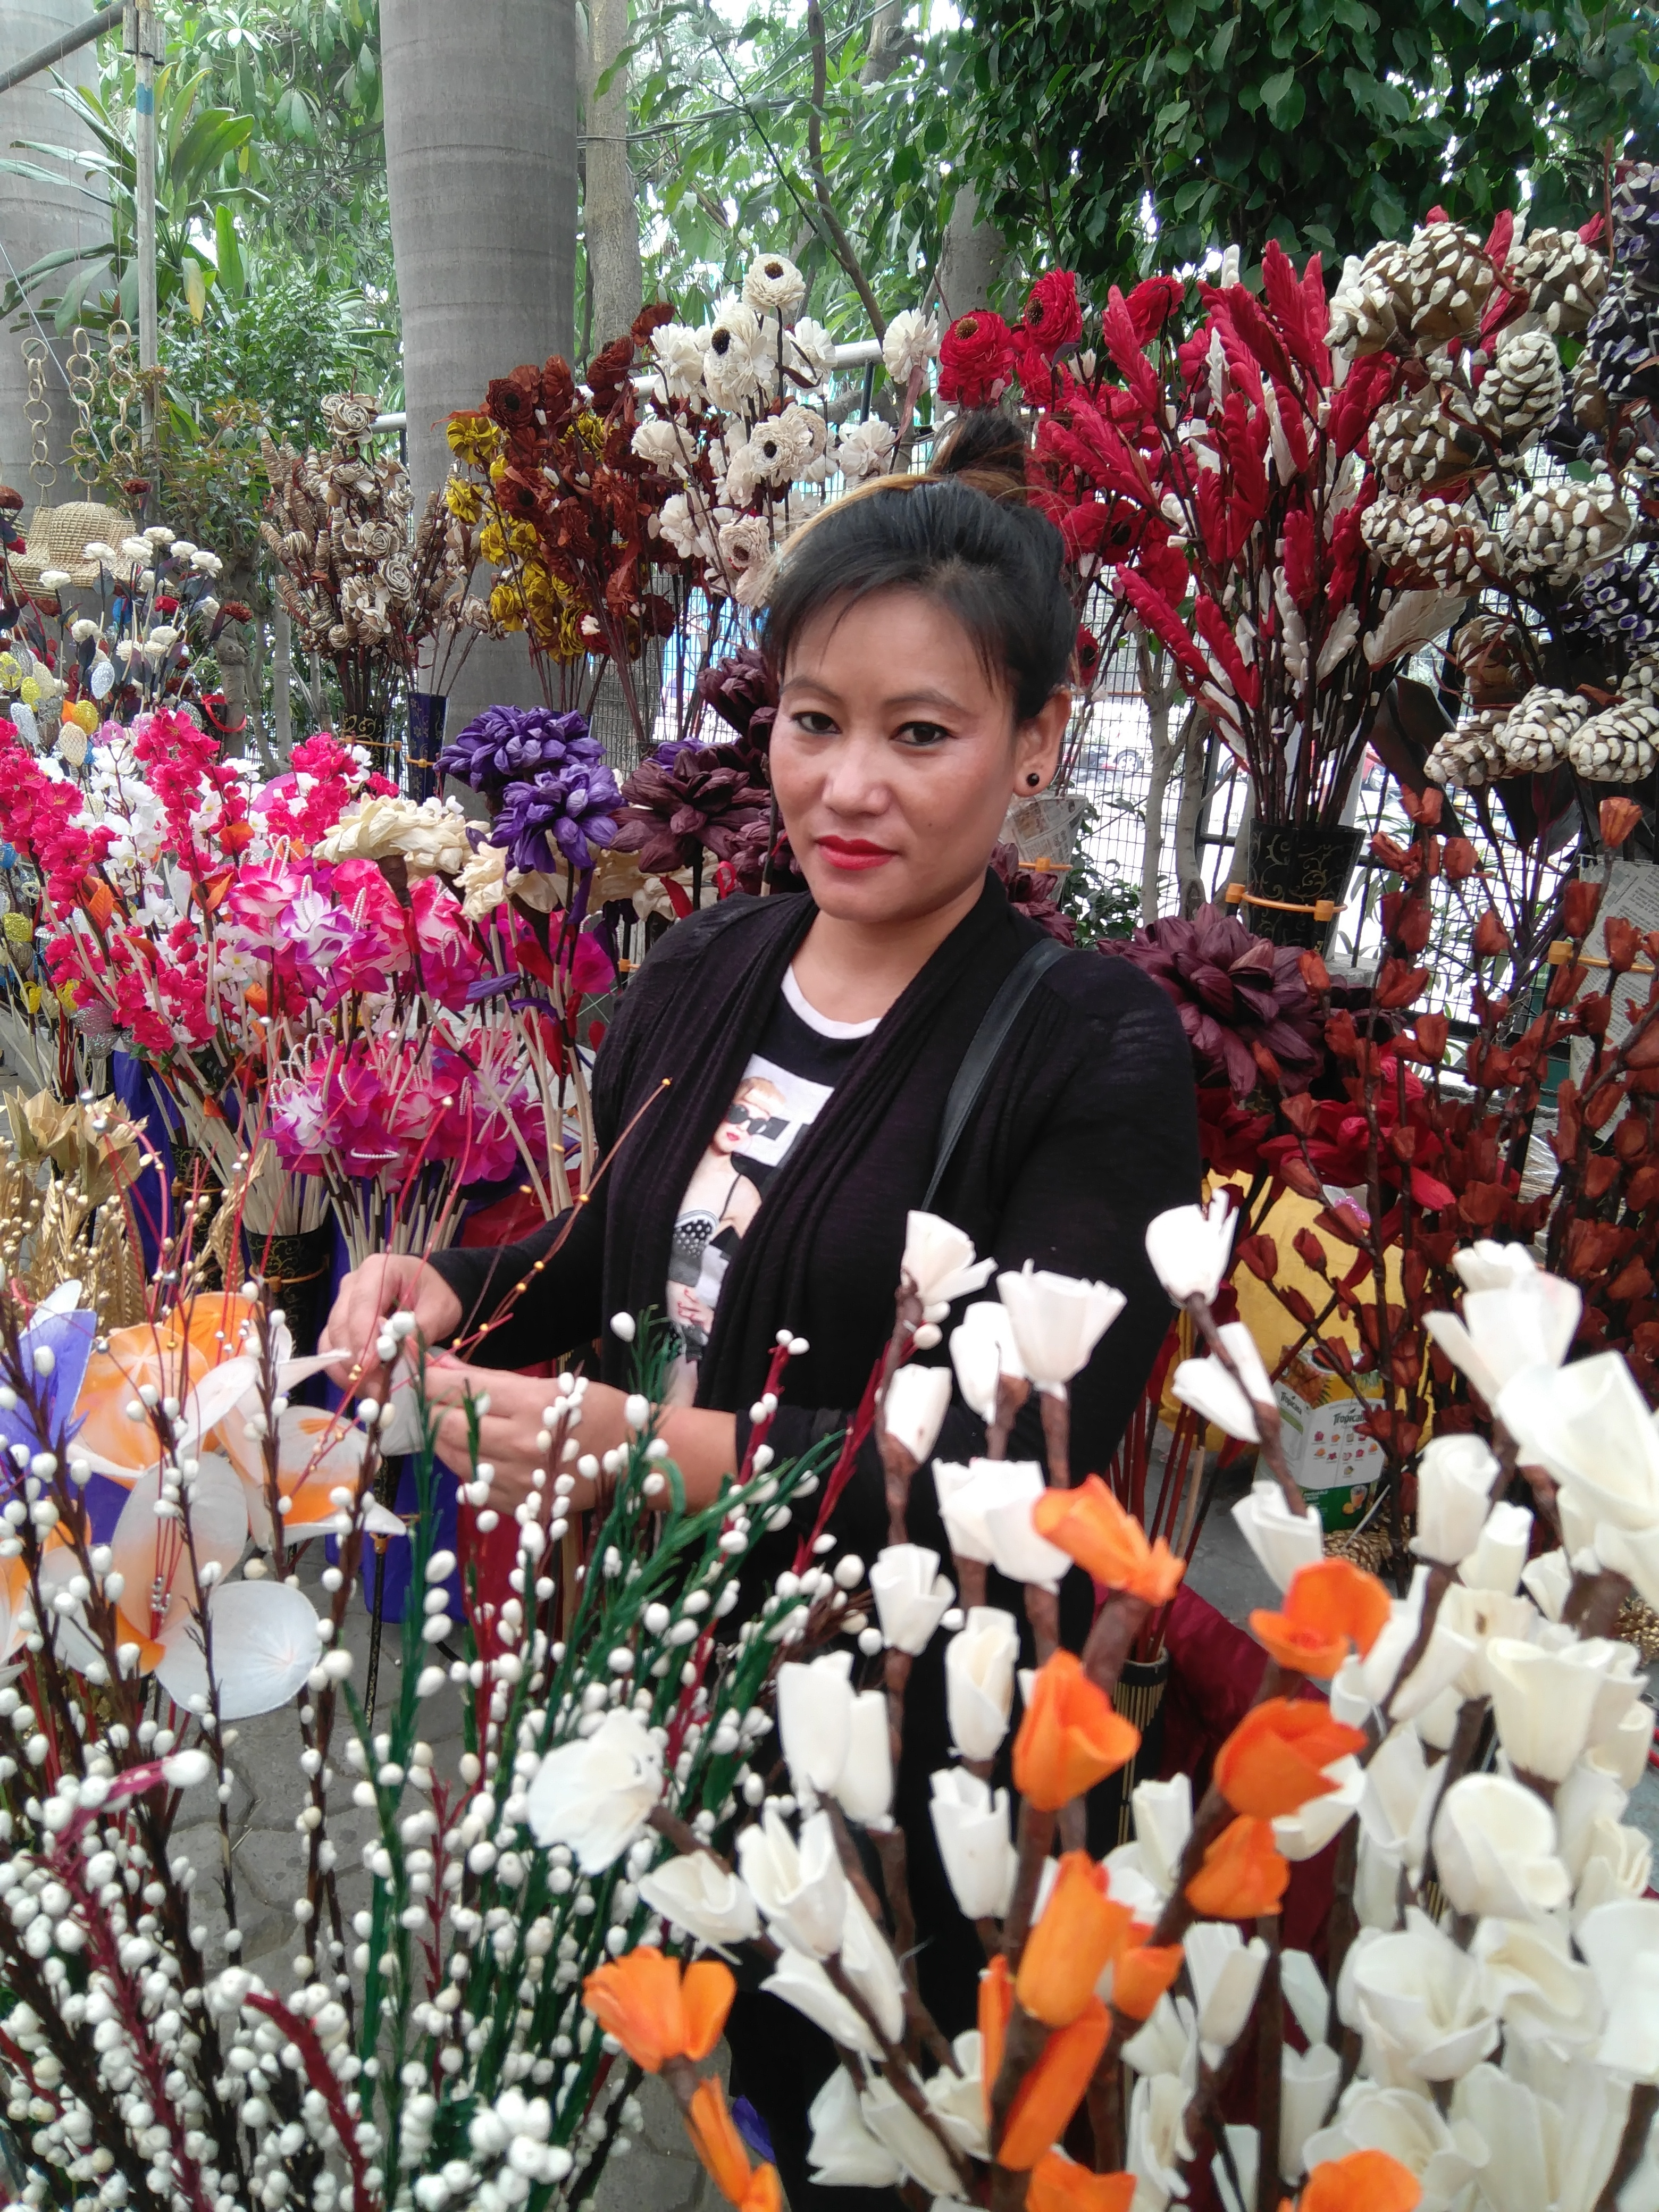 Ester Chishi along with her daughter Suliho has expertise in driftwood flower making